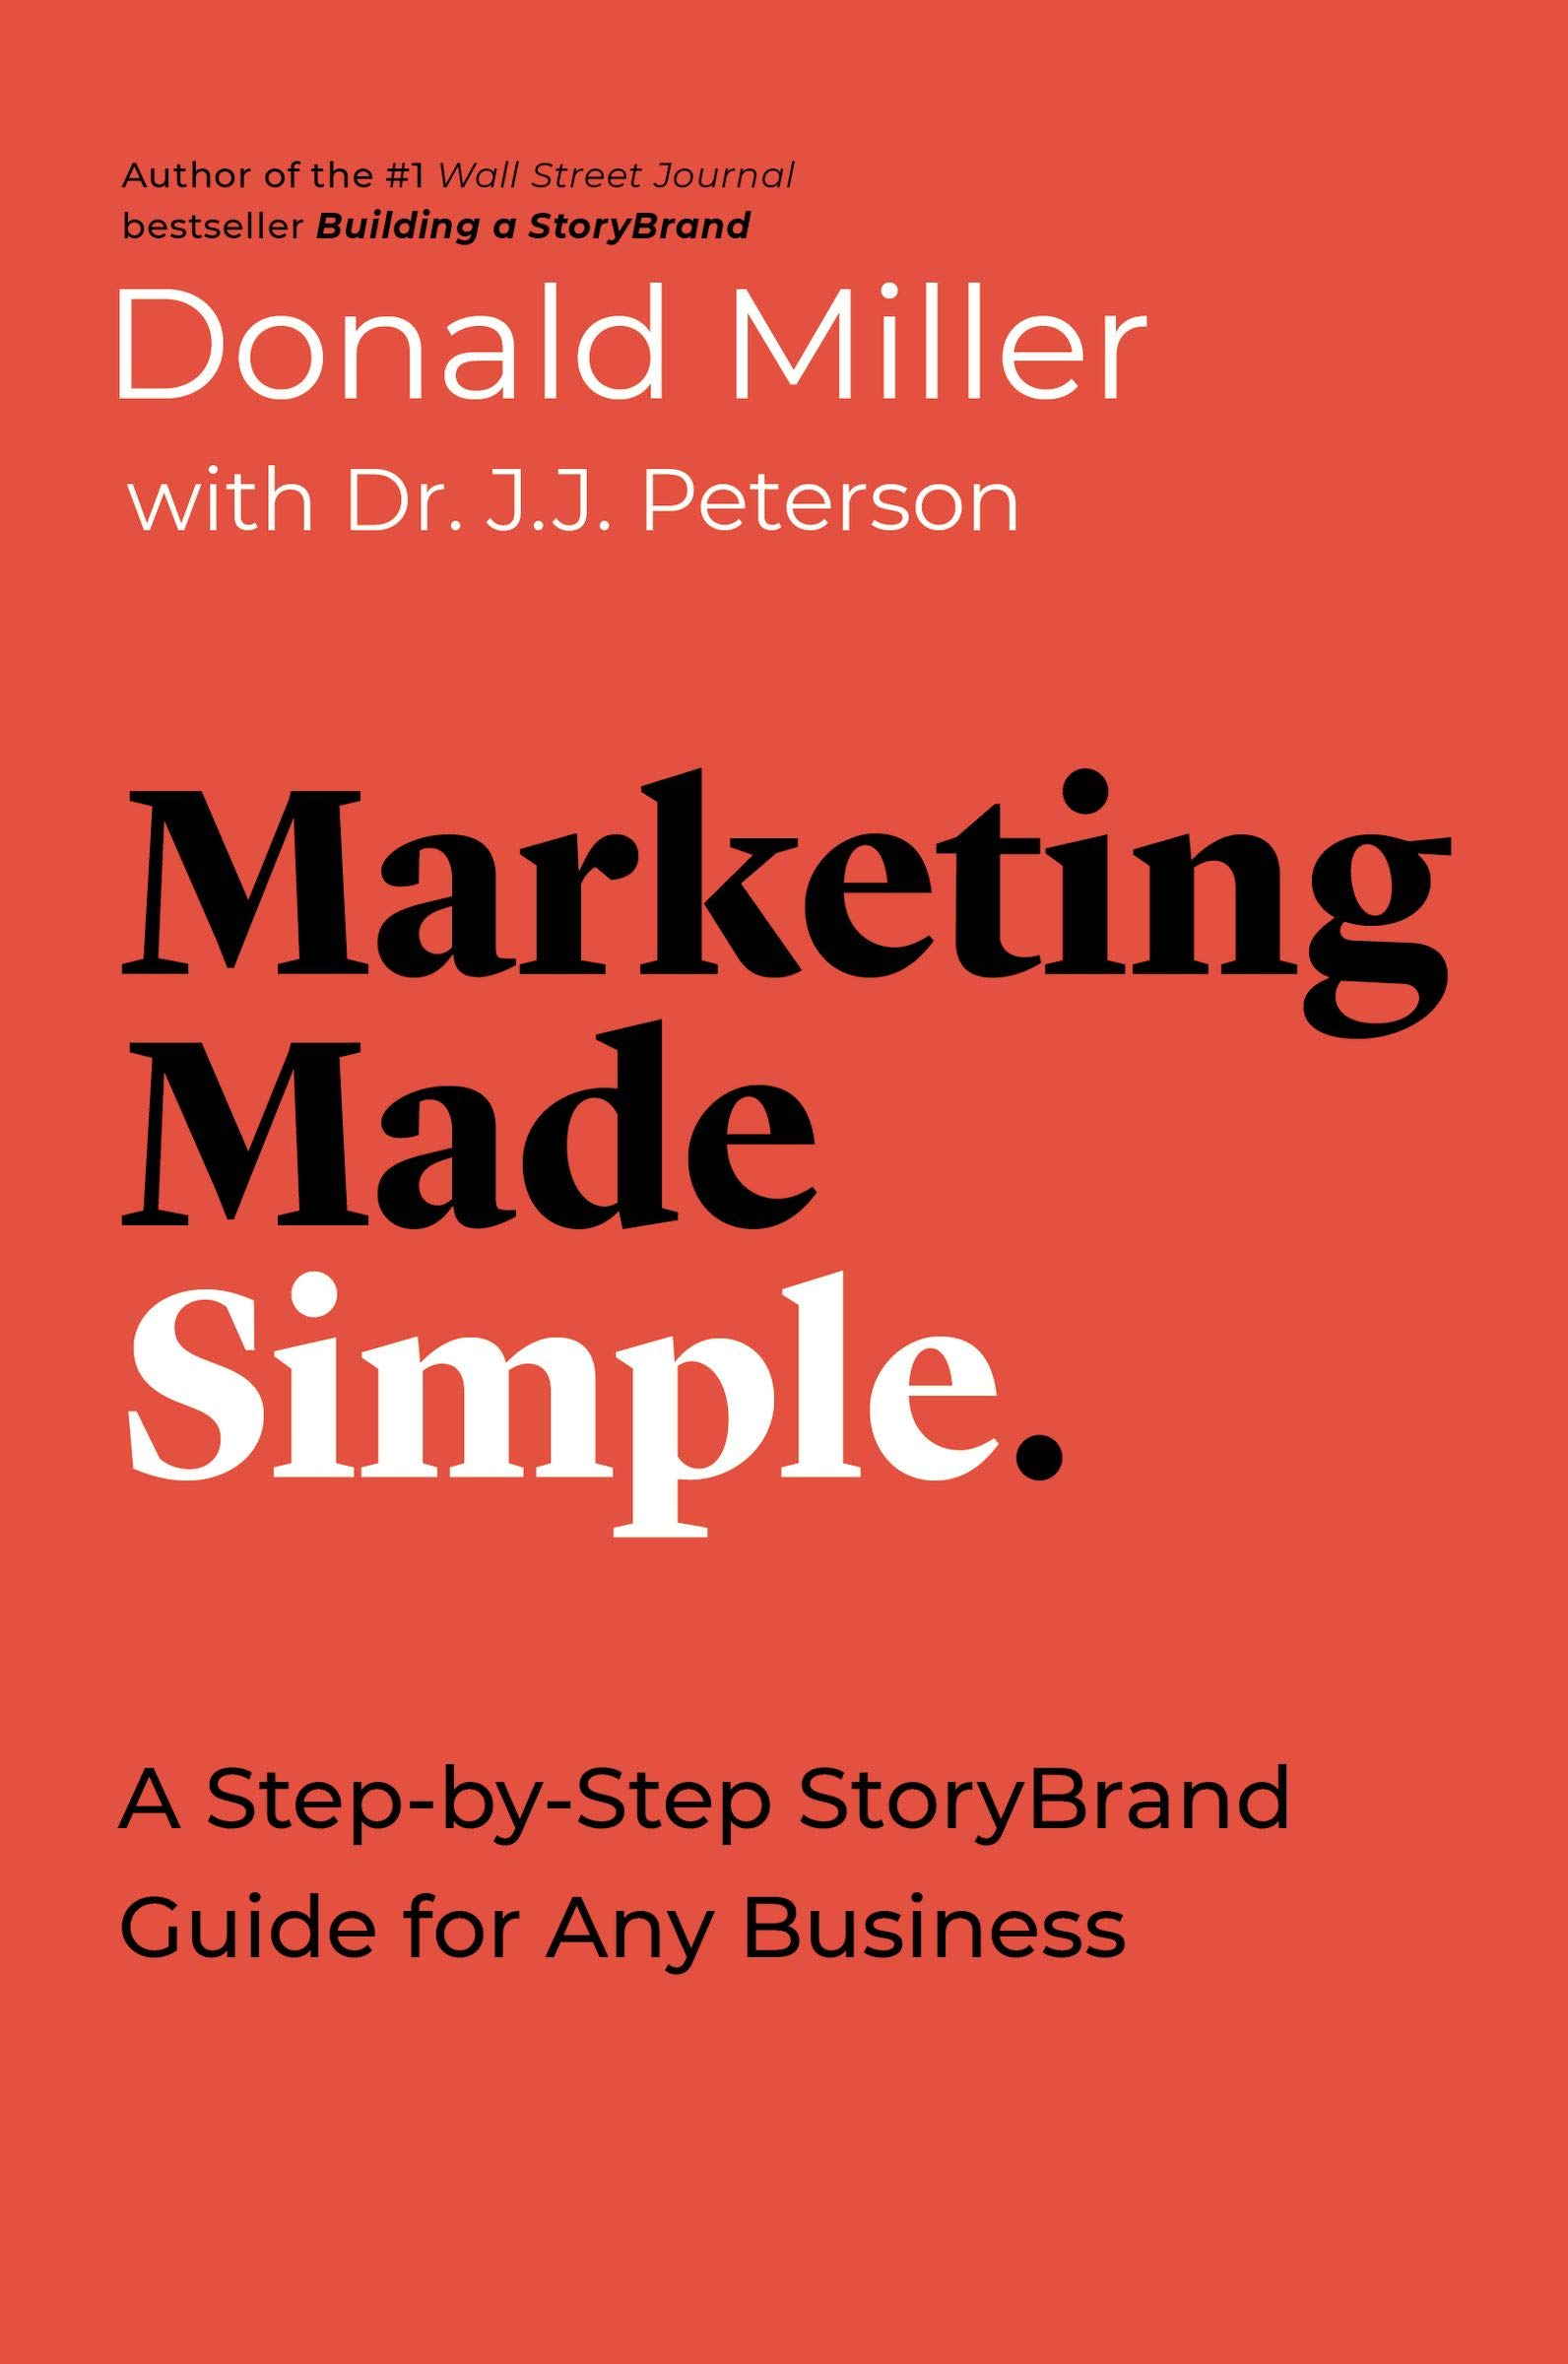 Marketing Made Simple Book by Donald Miller